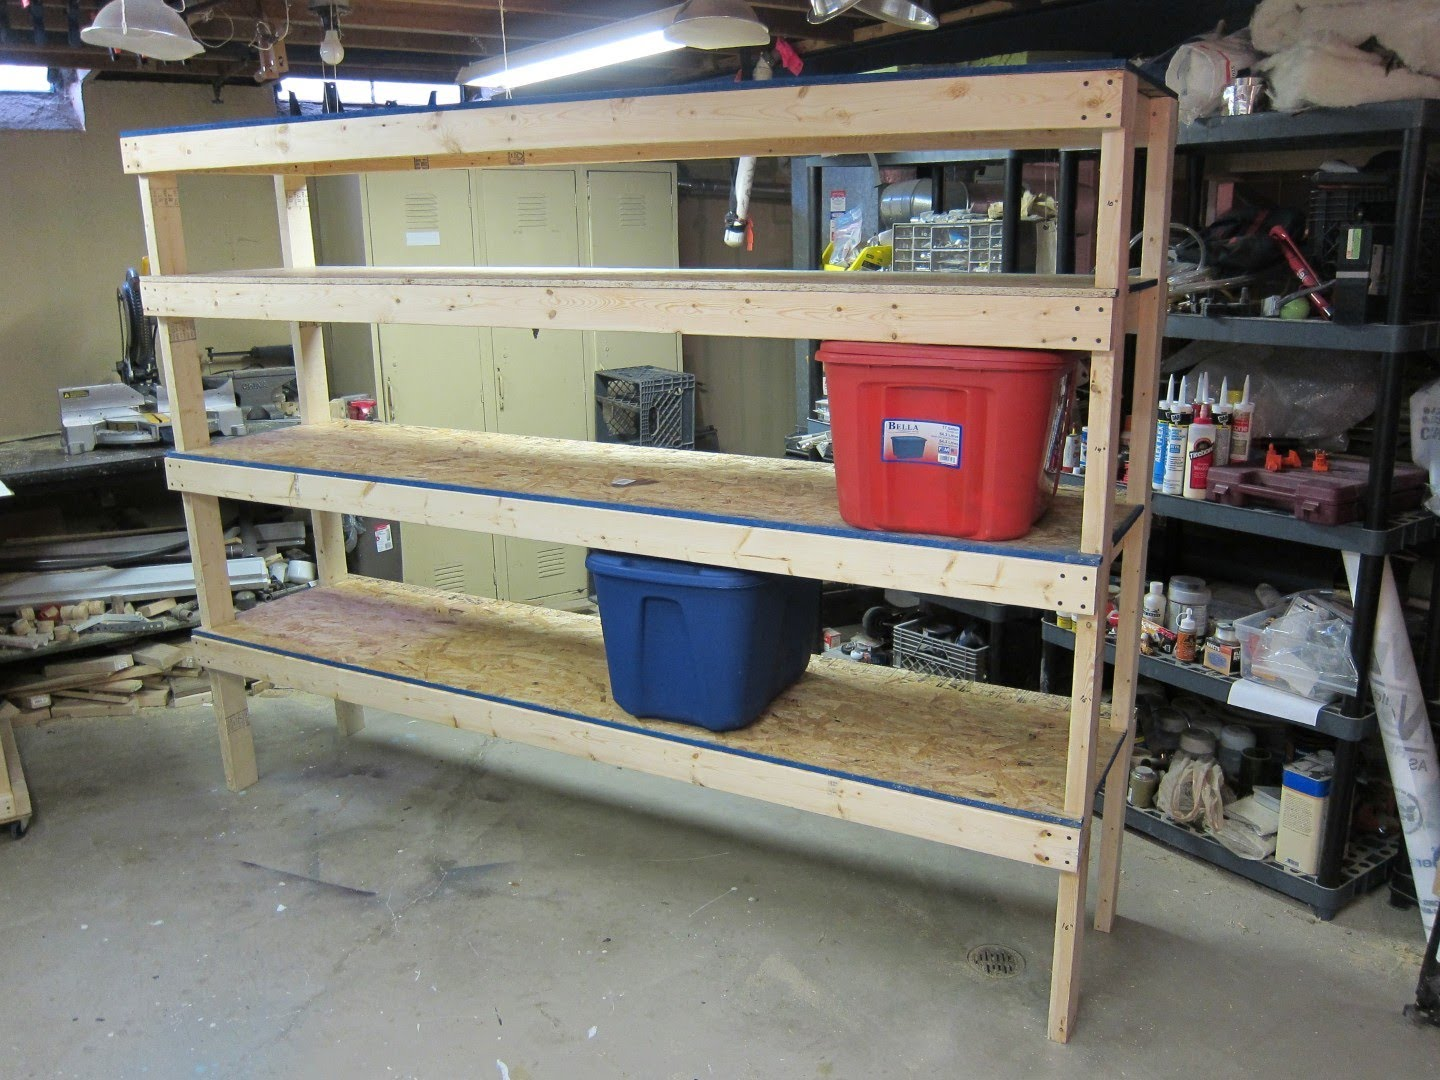 Diy garage shelves for your inspiration just craft diy projects - Space saving garage shelves ideas must have ...